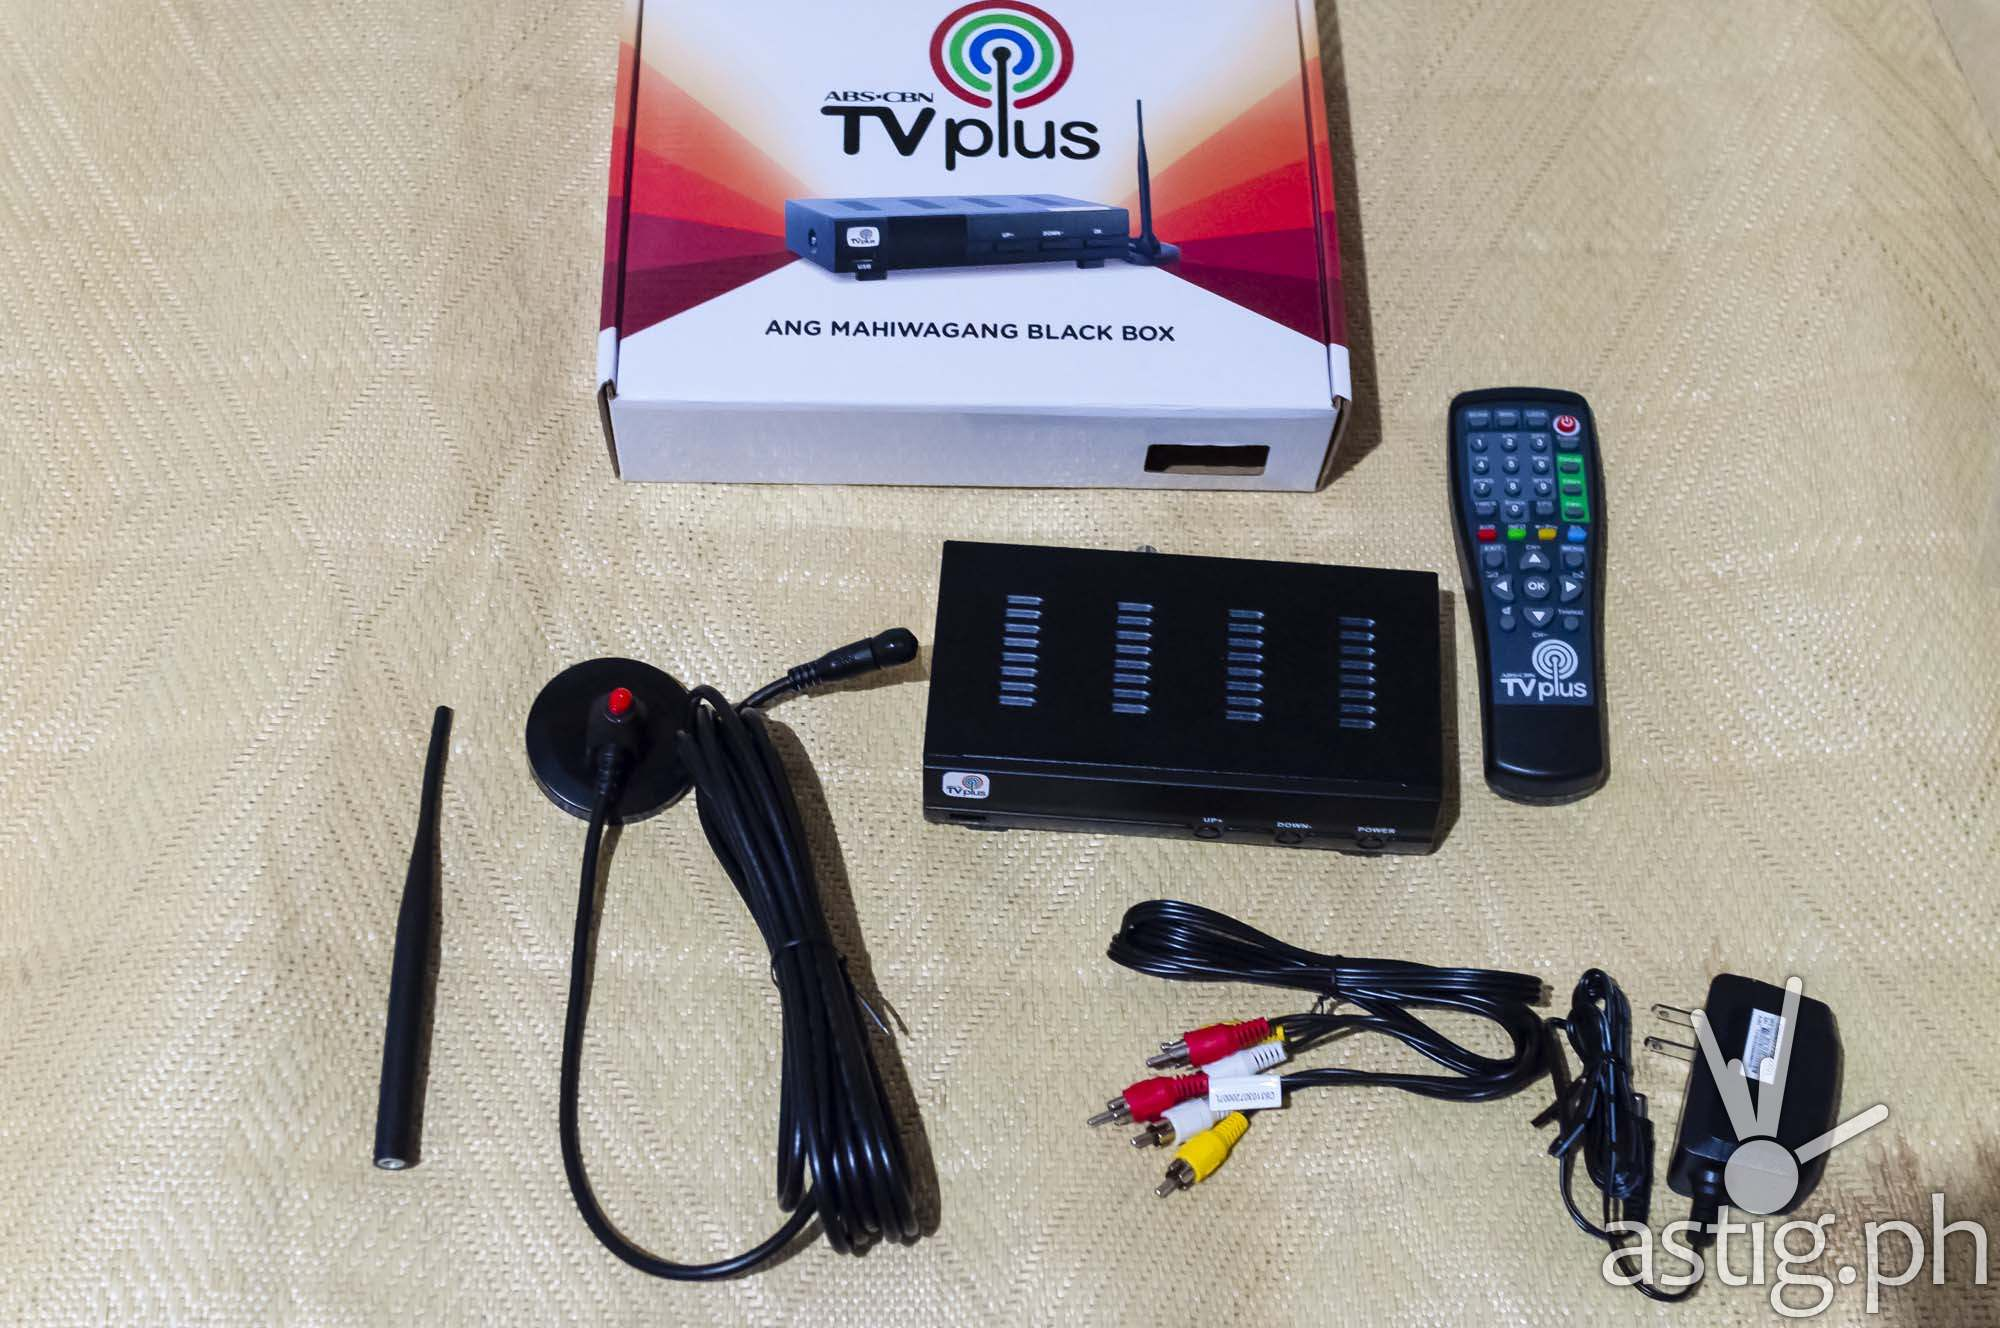 abs cbn tv plus installation guide